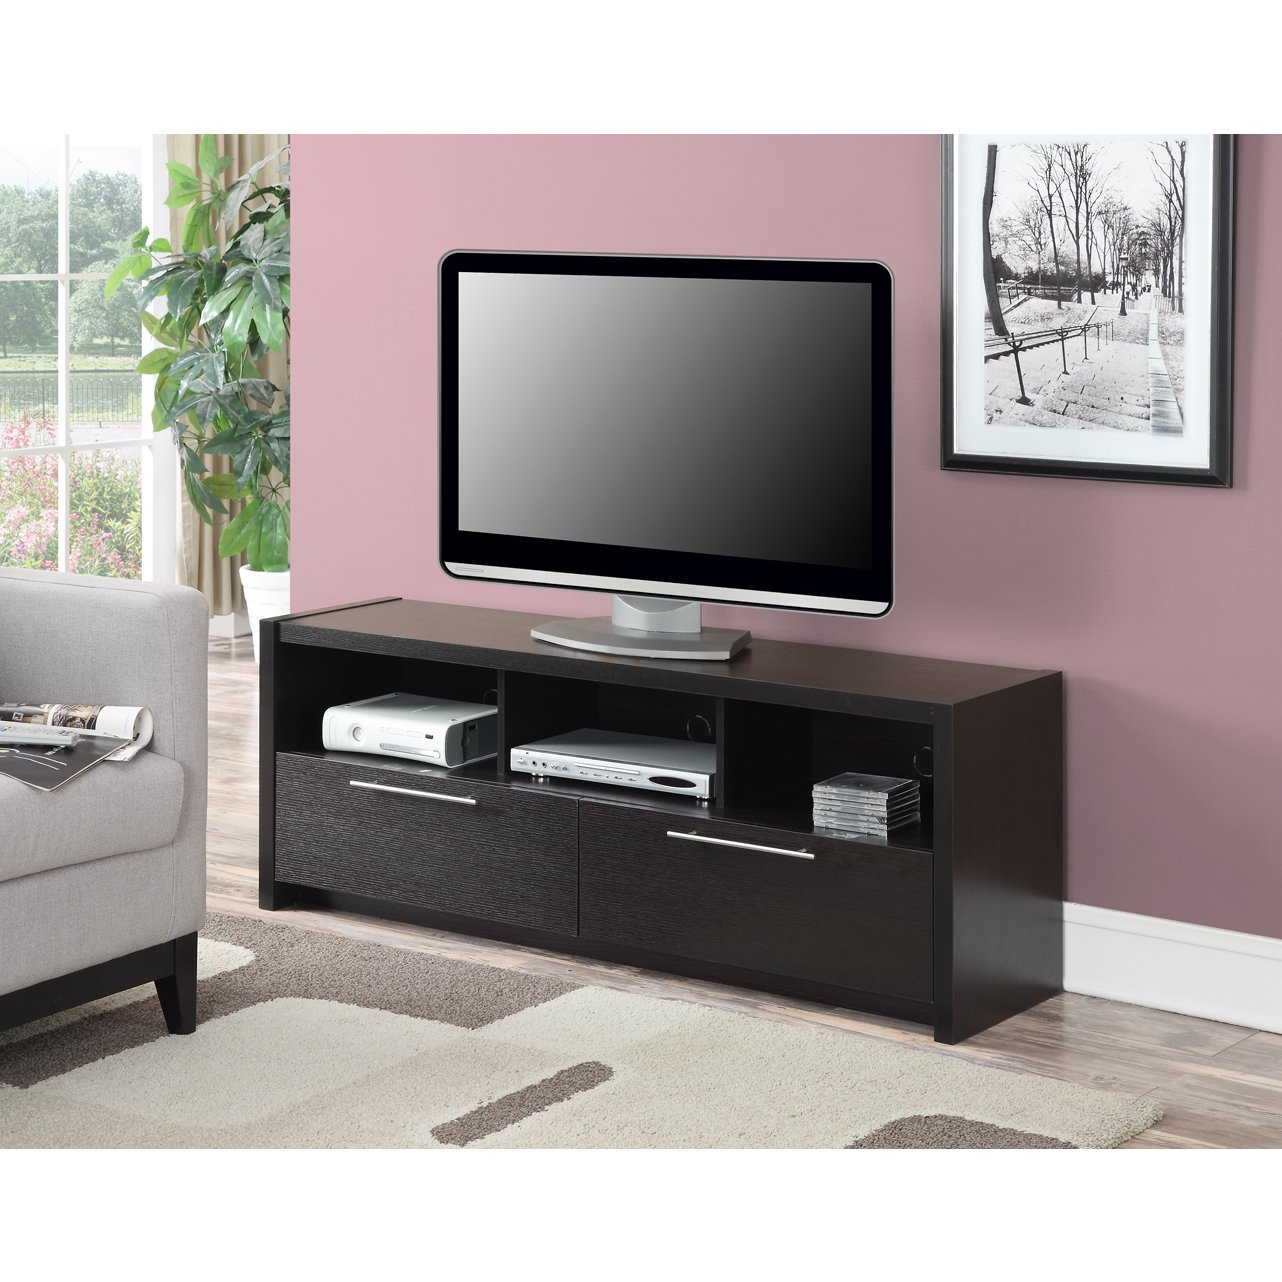 Buy Brown, Modern & Contemporary Tv Stands & Entertainment Centers Regarding Rowan 74 Inch Tv Stands (View 20 of 30)